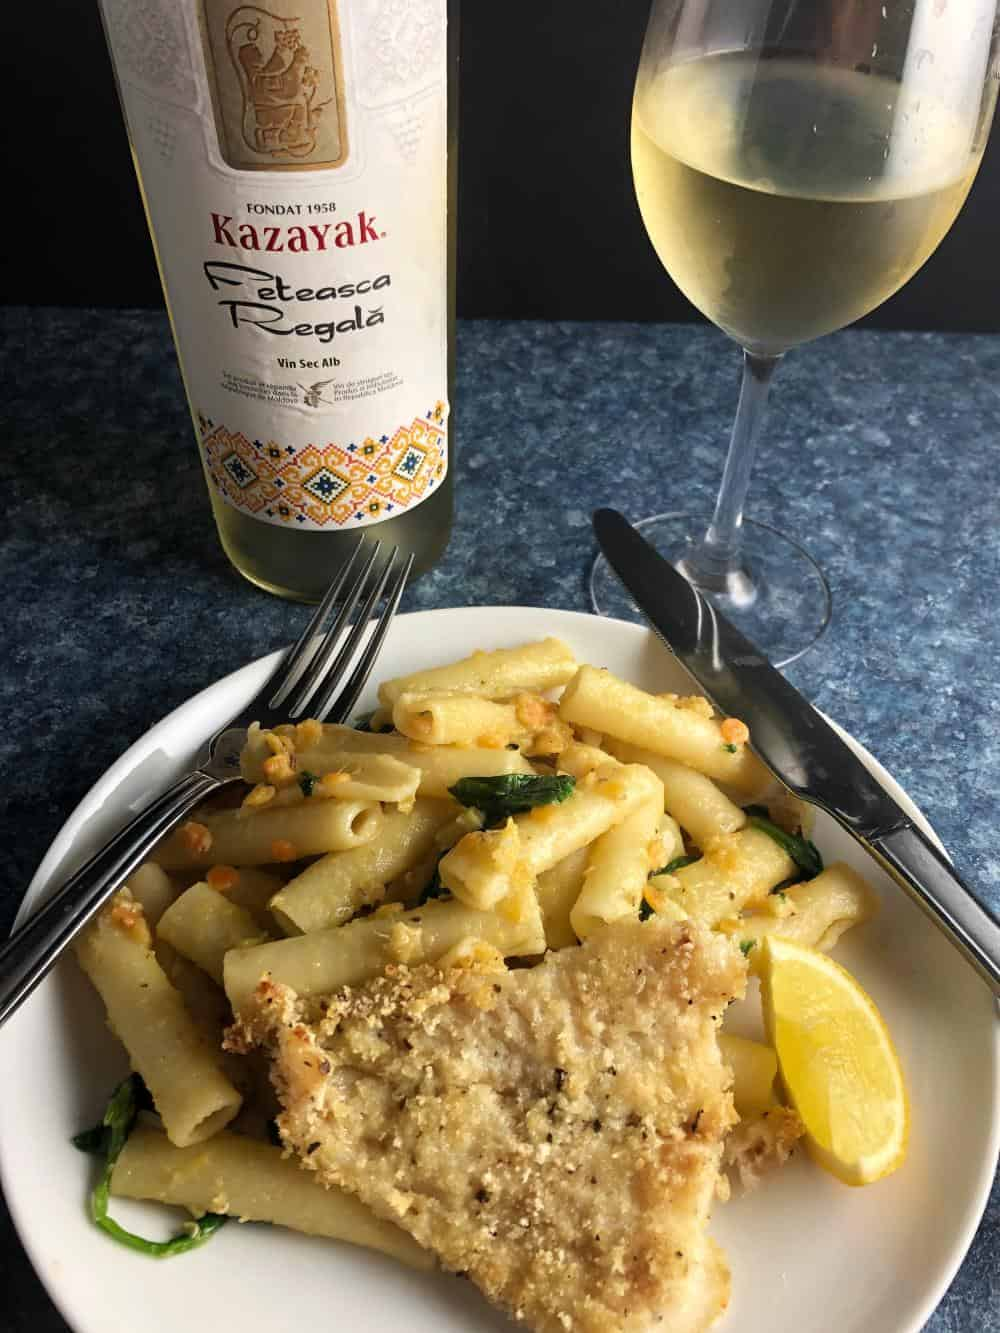 white wine from Moldova with fish and pasta.